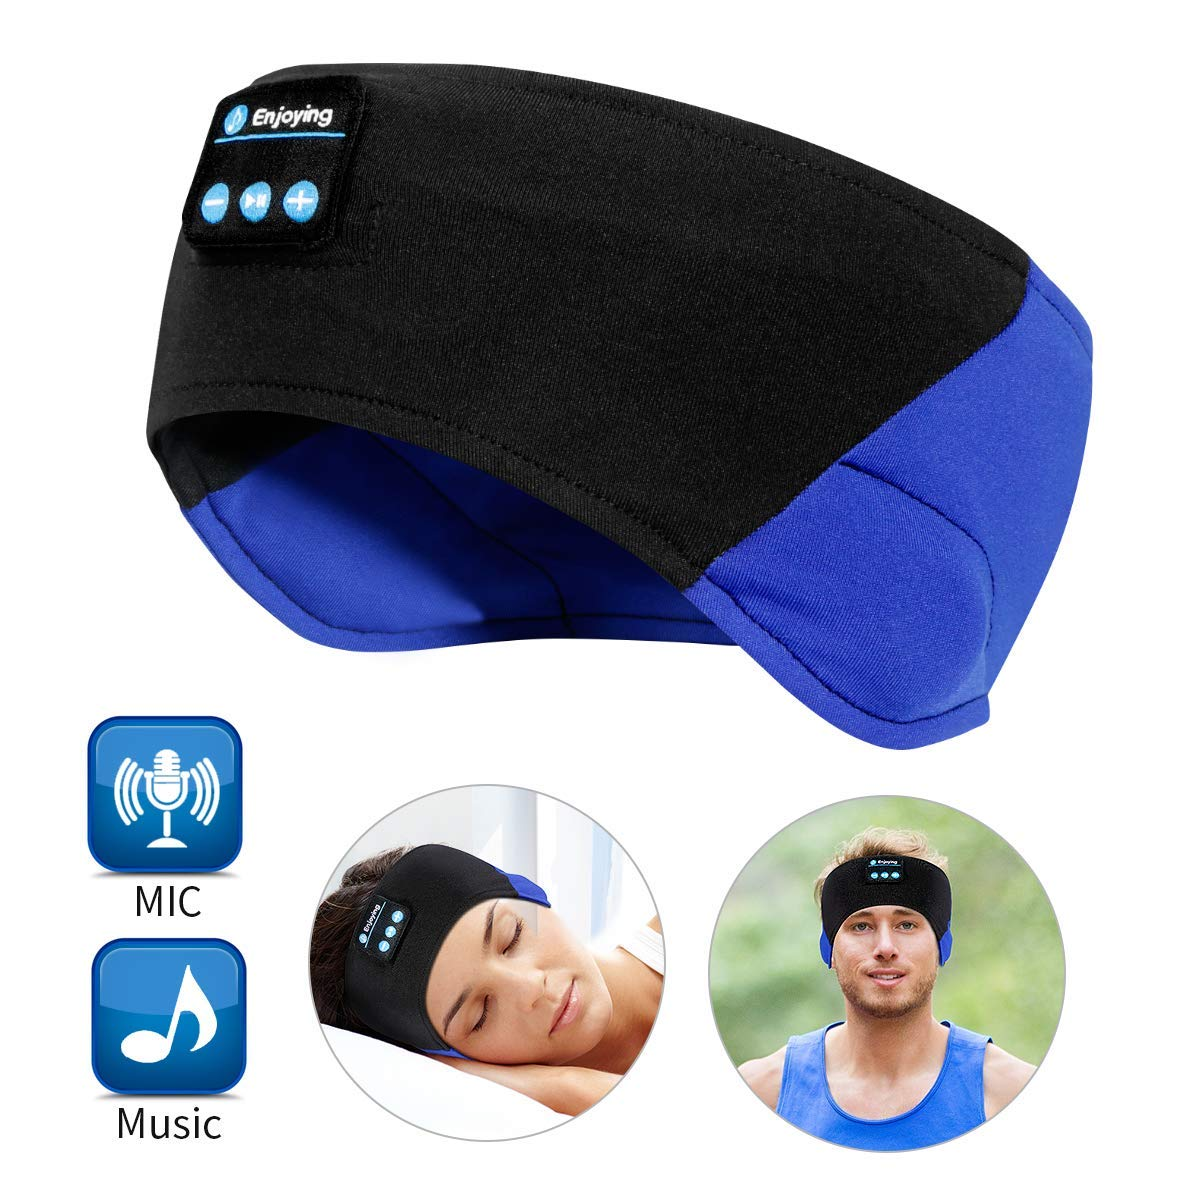 Bluetooth Sleep Headphones – The Young s Bluetooth Sport Headband Wireless Sleeping Headphones for Workout Jogging Yoga – Black and Blue